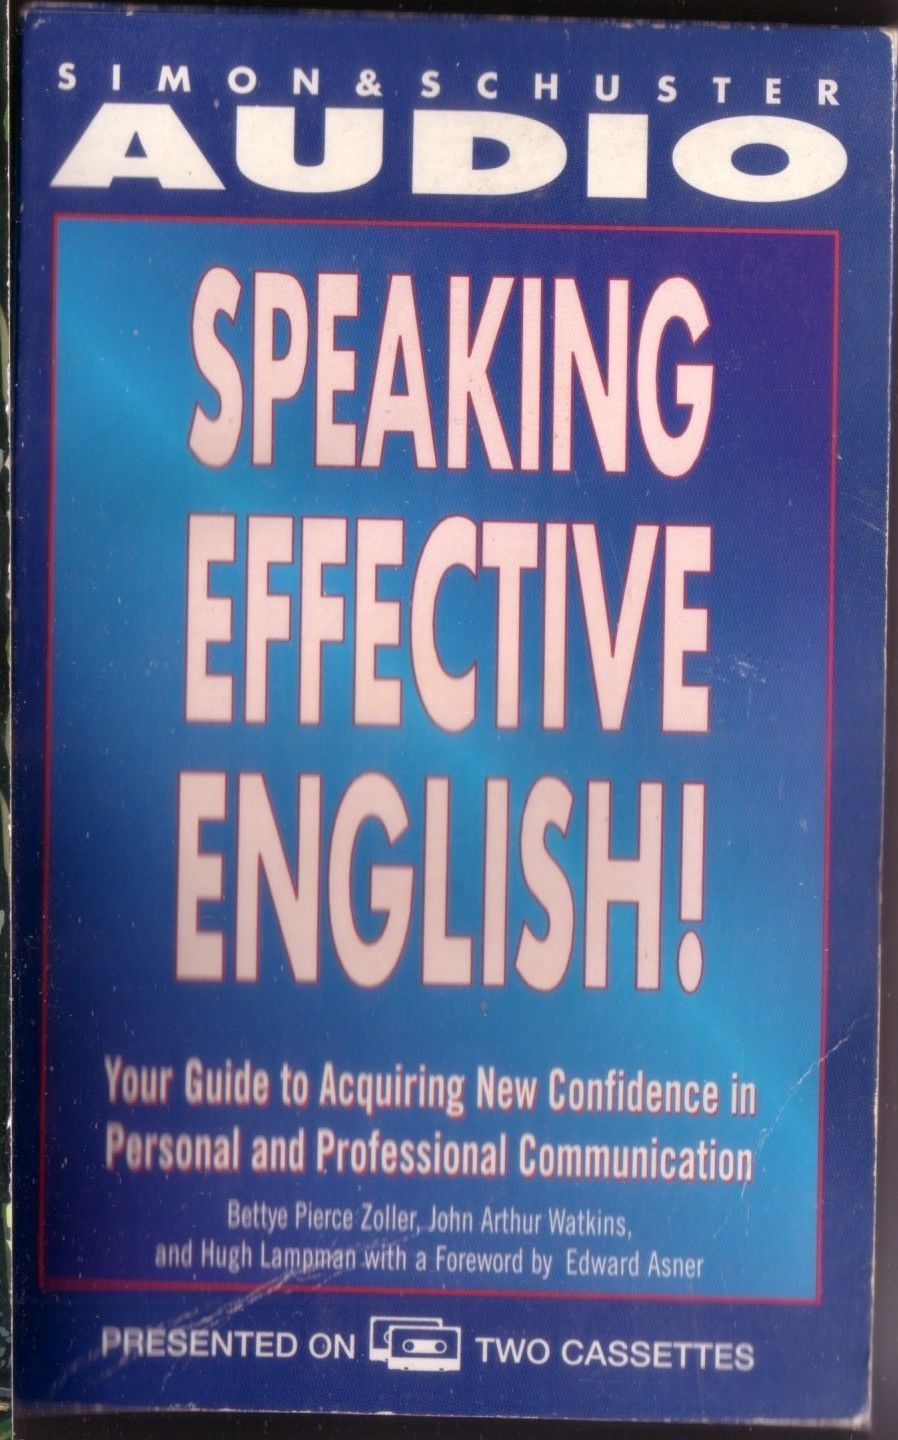 Speaking effective english guide to personal and professional communication hugh